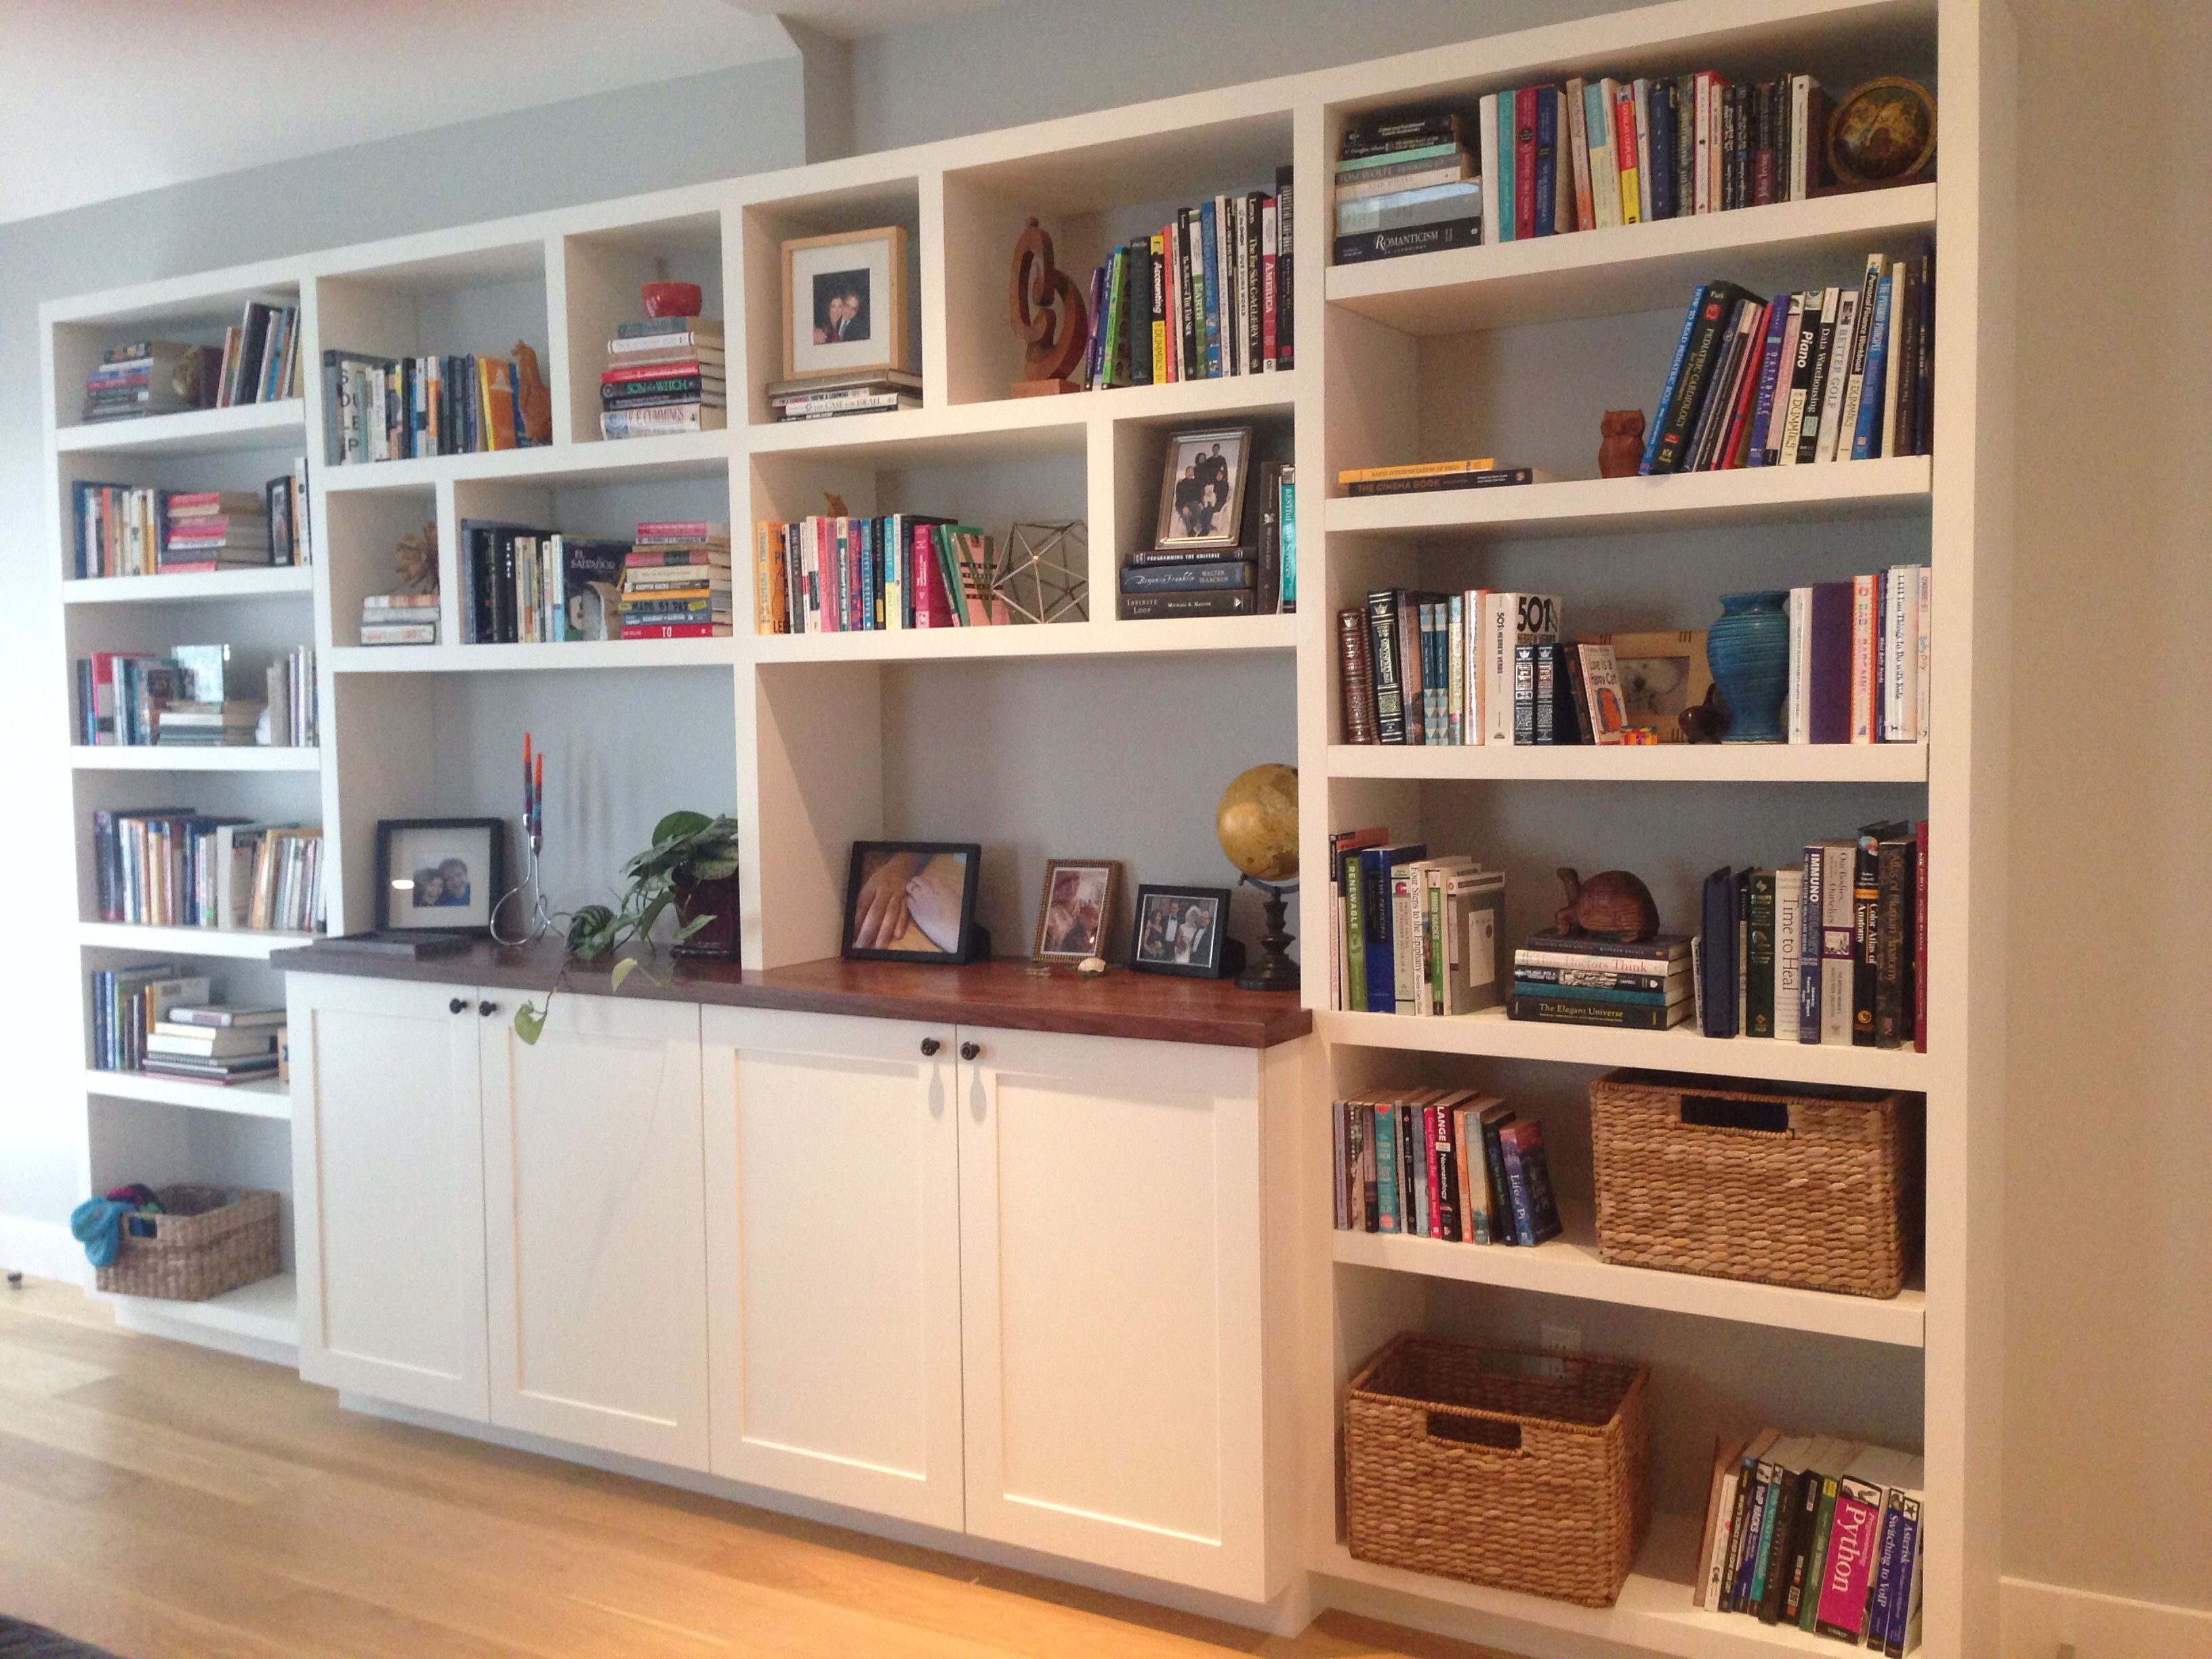 Built in bookshelves installed librerias pladur - Libreria de pladur ...